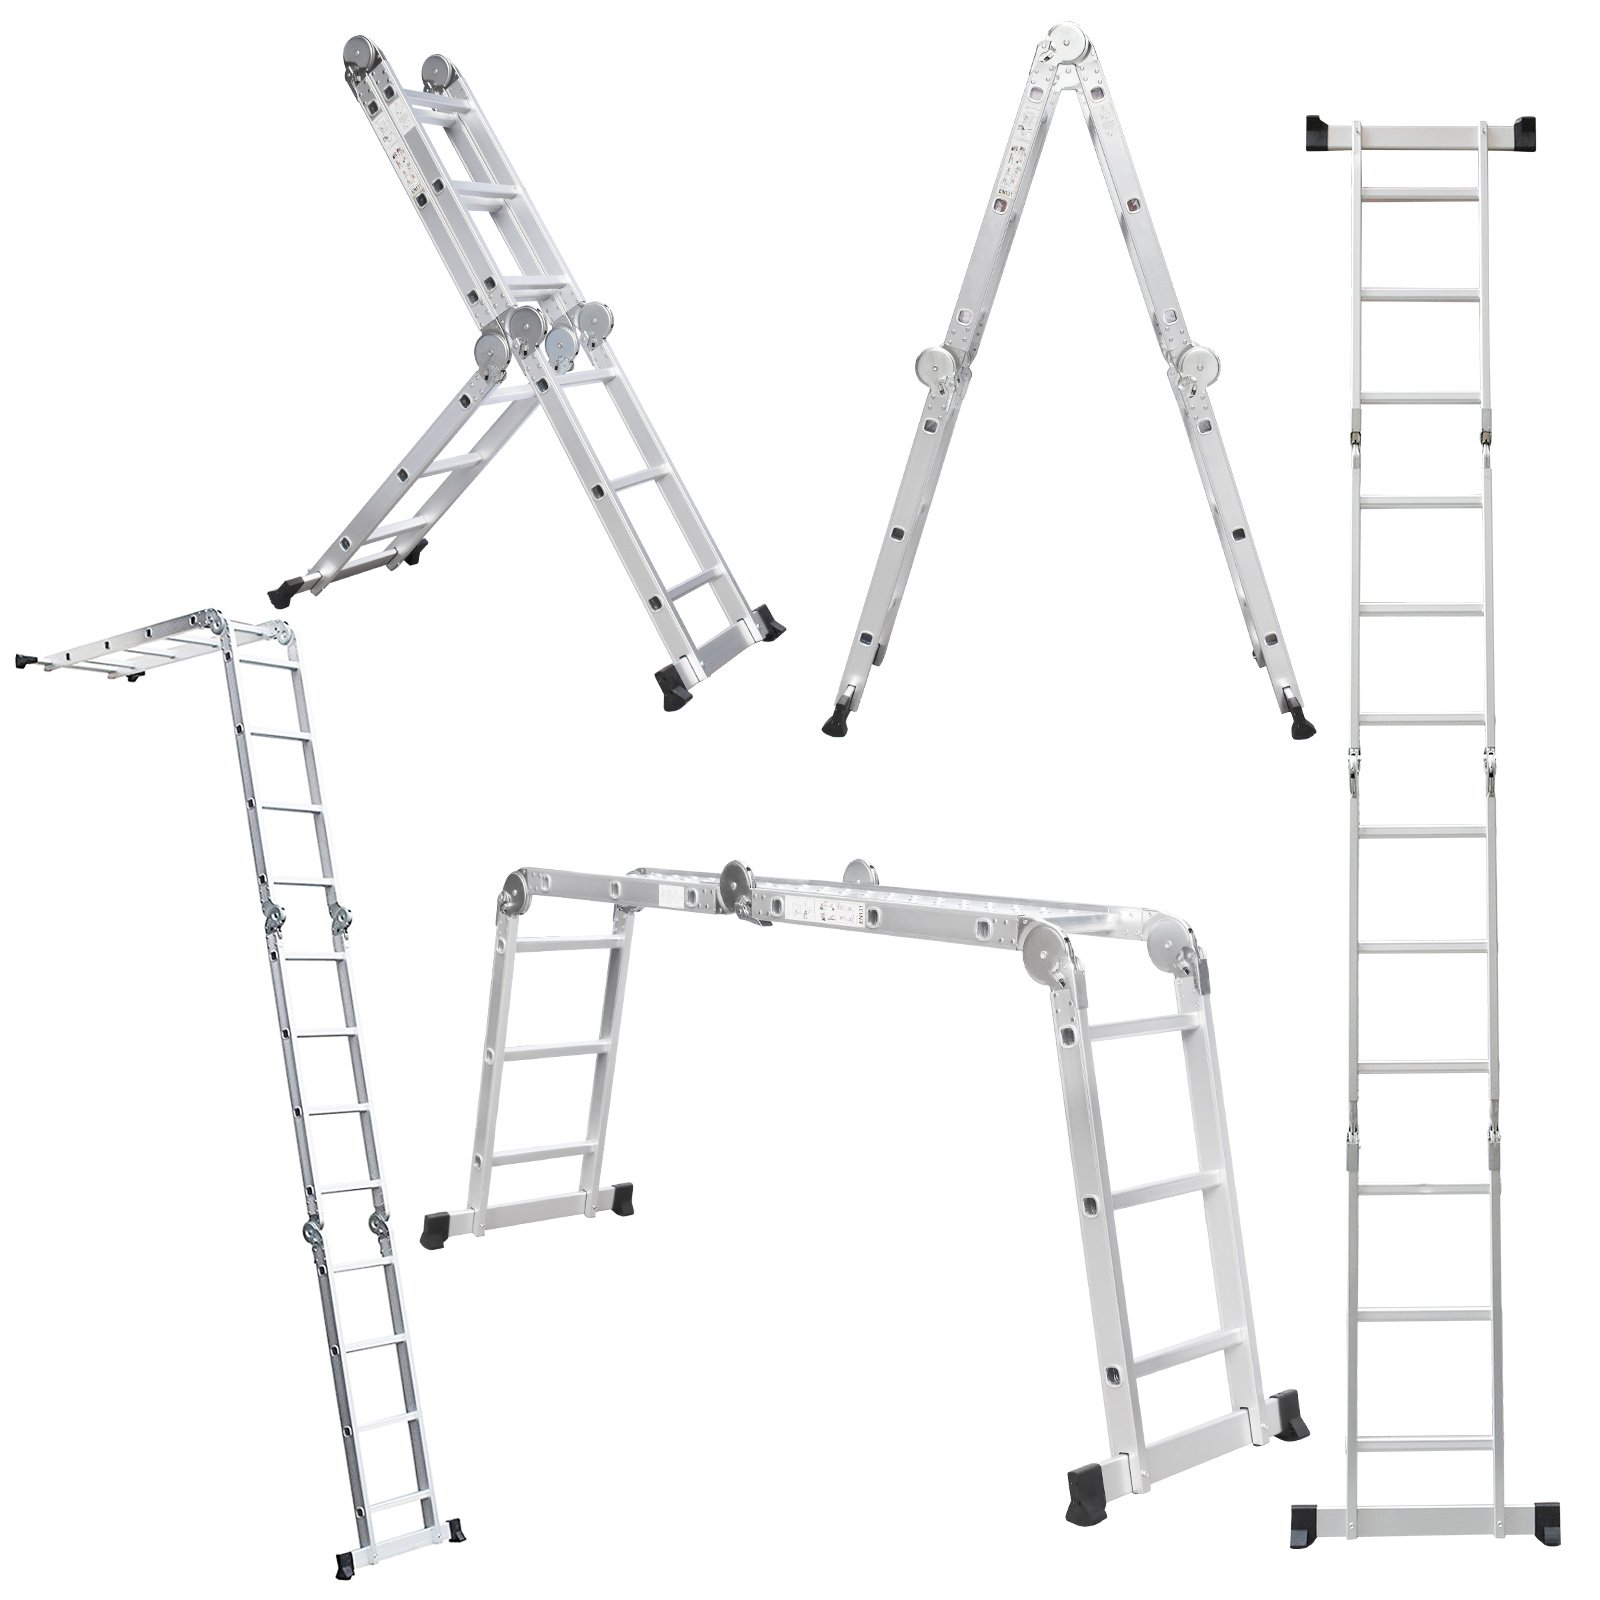 11.68ft Aluminum 4x3 Steps Folding Ladder Rubber feet Heavy Duty Multi Purpose Work Platform Extension Ladder with Safety Locking Hinges 330lb Capacity